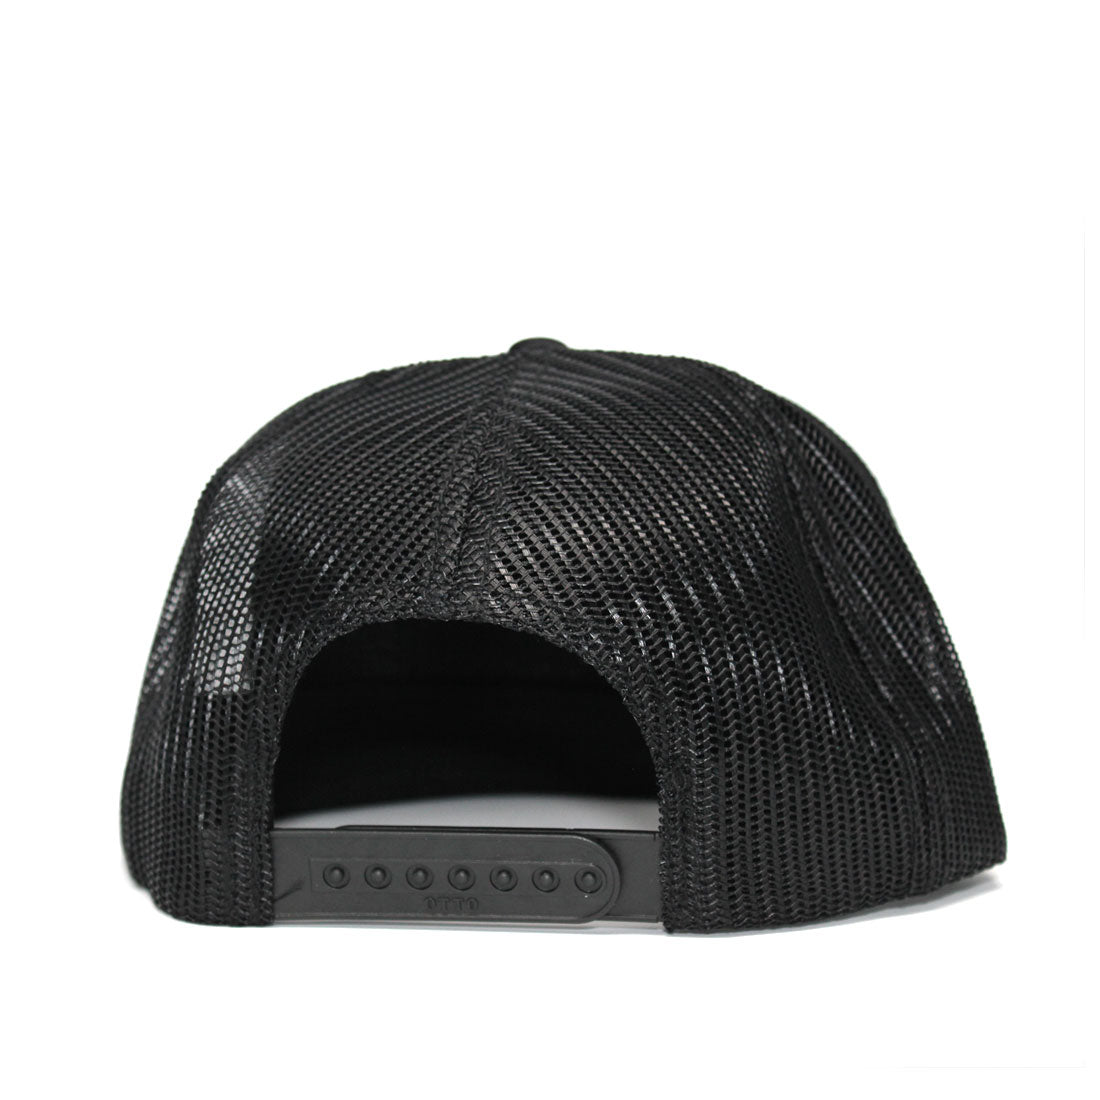 RIZNWILD | black trucker hat back of hat showing snap